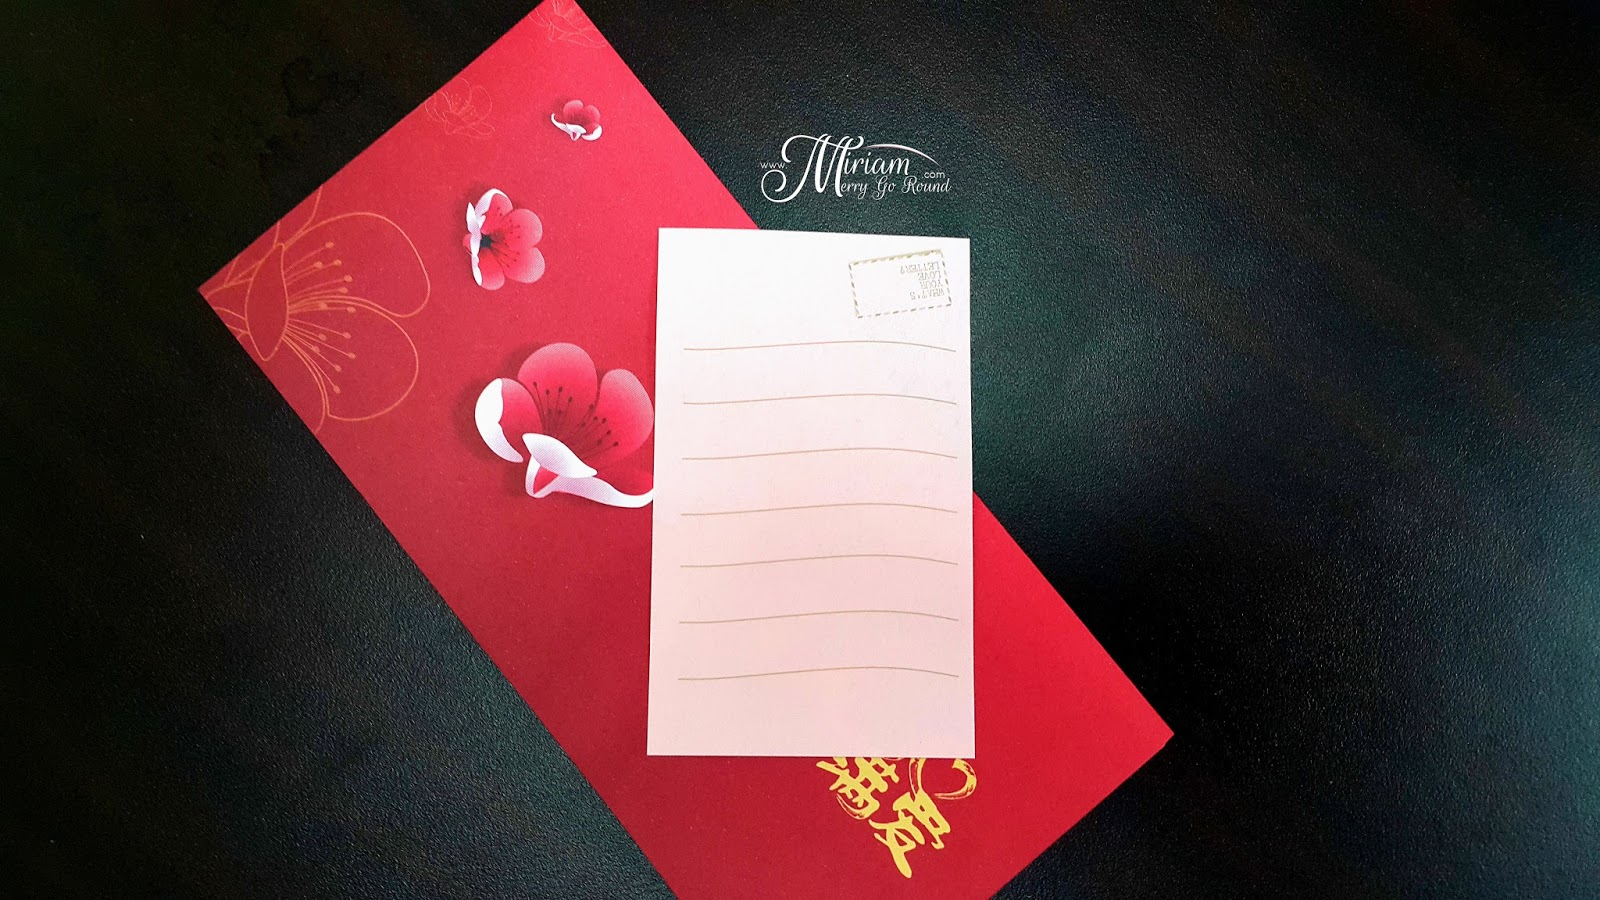 Julies Biscuits Cny Whats Your Love Letter Miriam Merrygoround